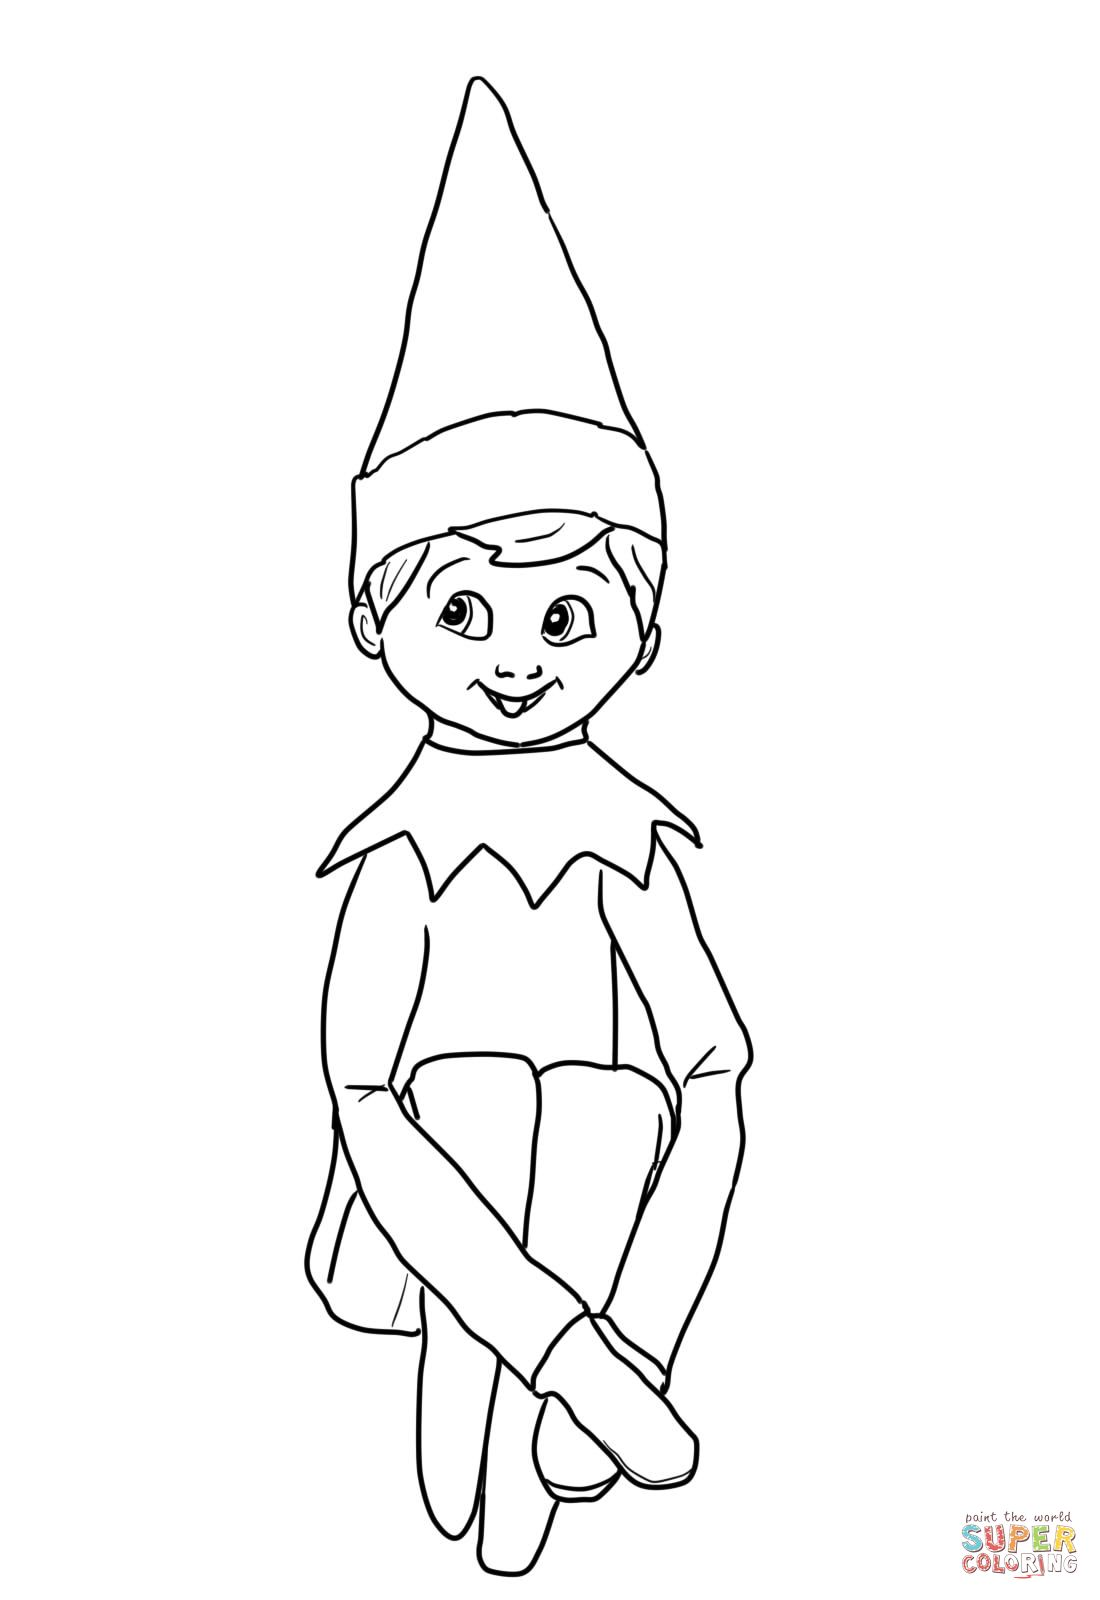 Girl elf on the shelf coloring pages you might also be interested in coloring pages from